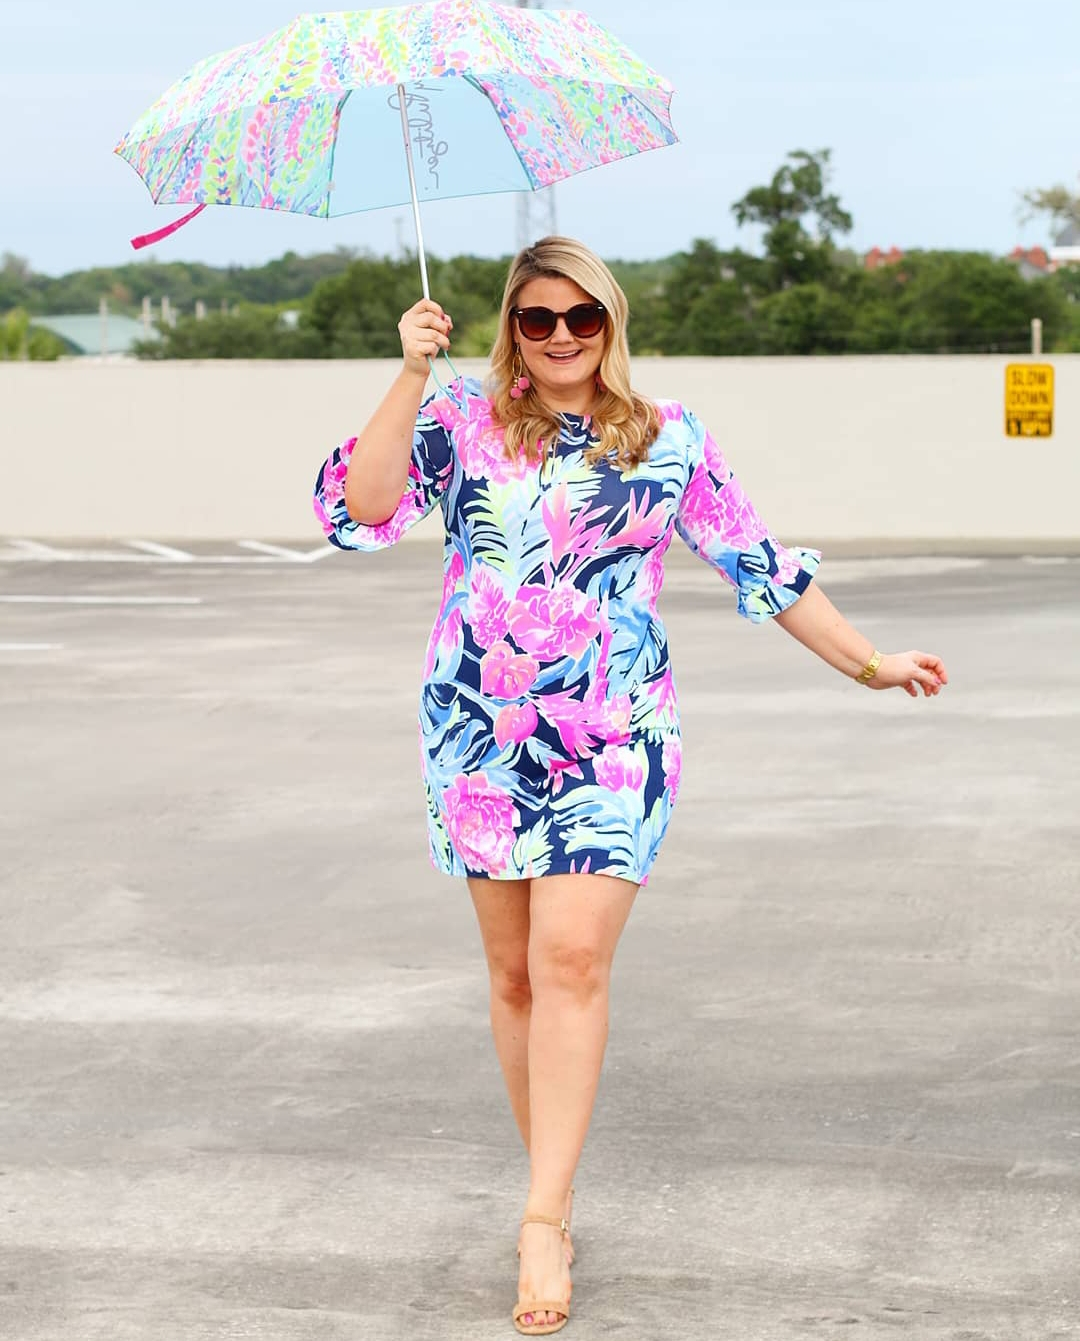 Orlando blogger Emily of Fabulously Overdressed shares her tips for self tanning at home